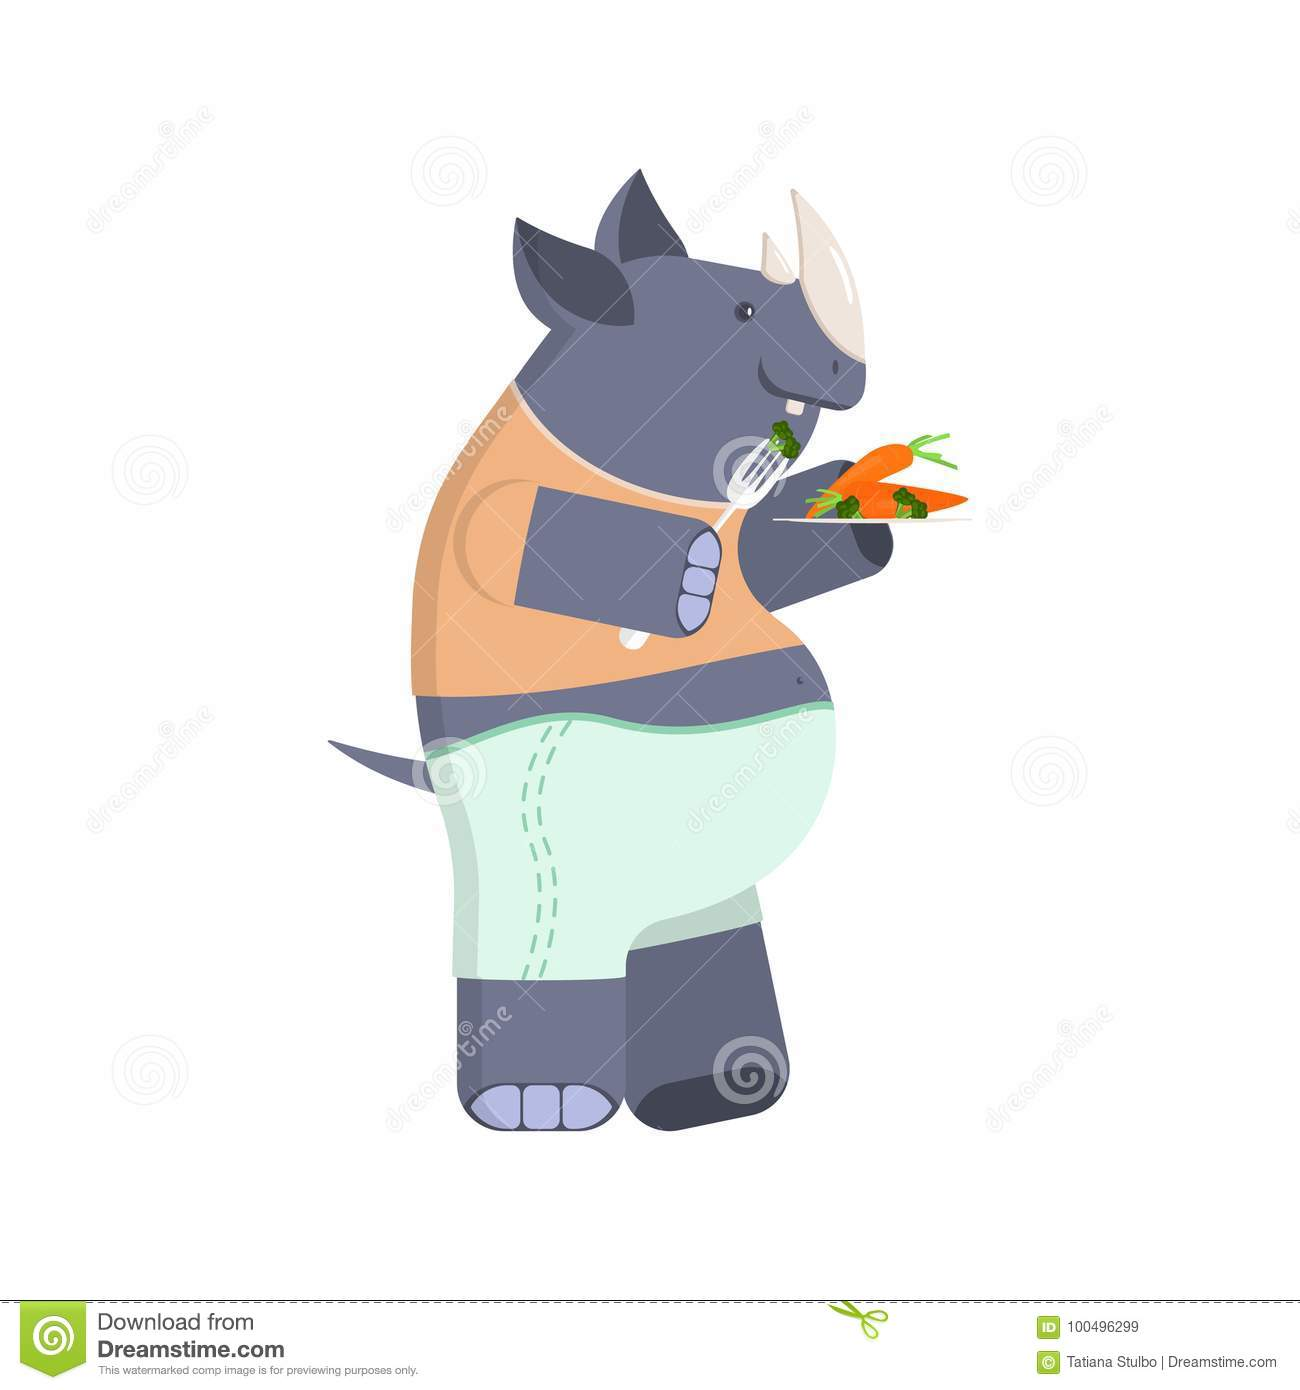 Rhinoceros on a diet stock vector. Illustration of concept ...